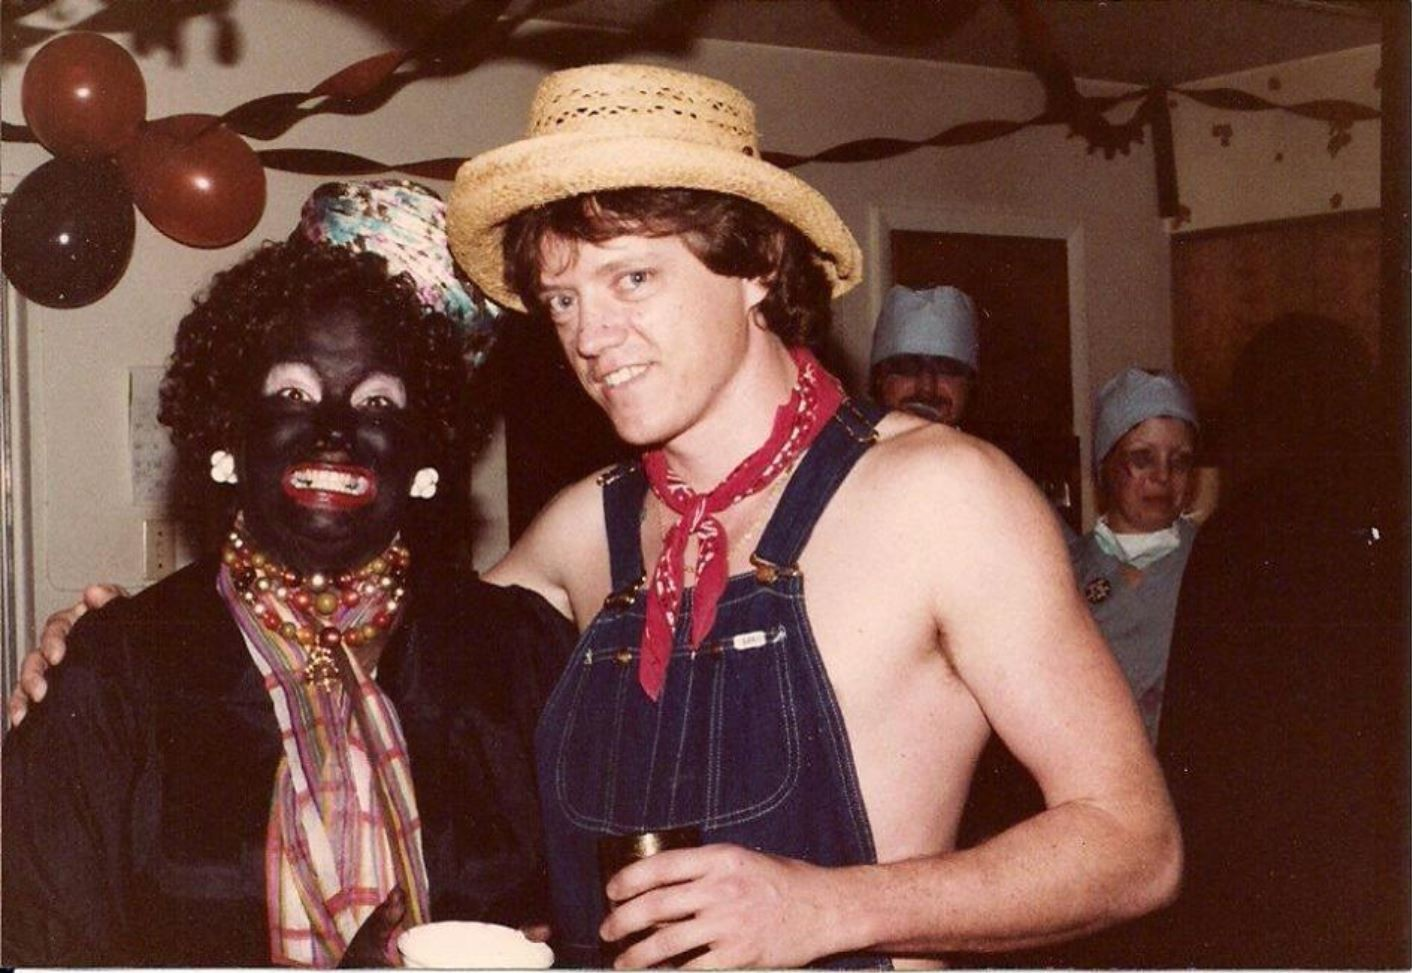 Almost always the same story Blackface